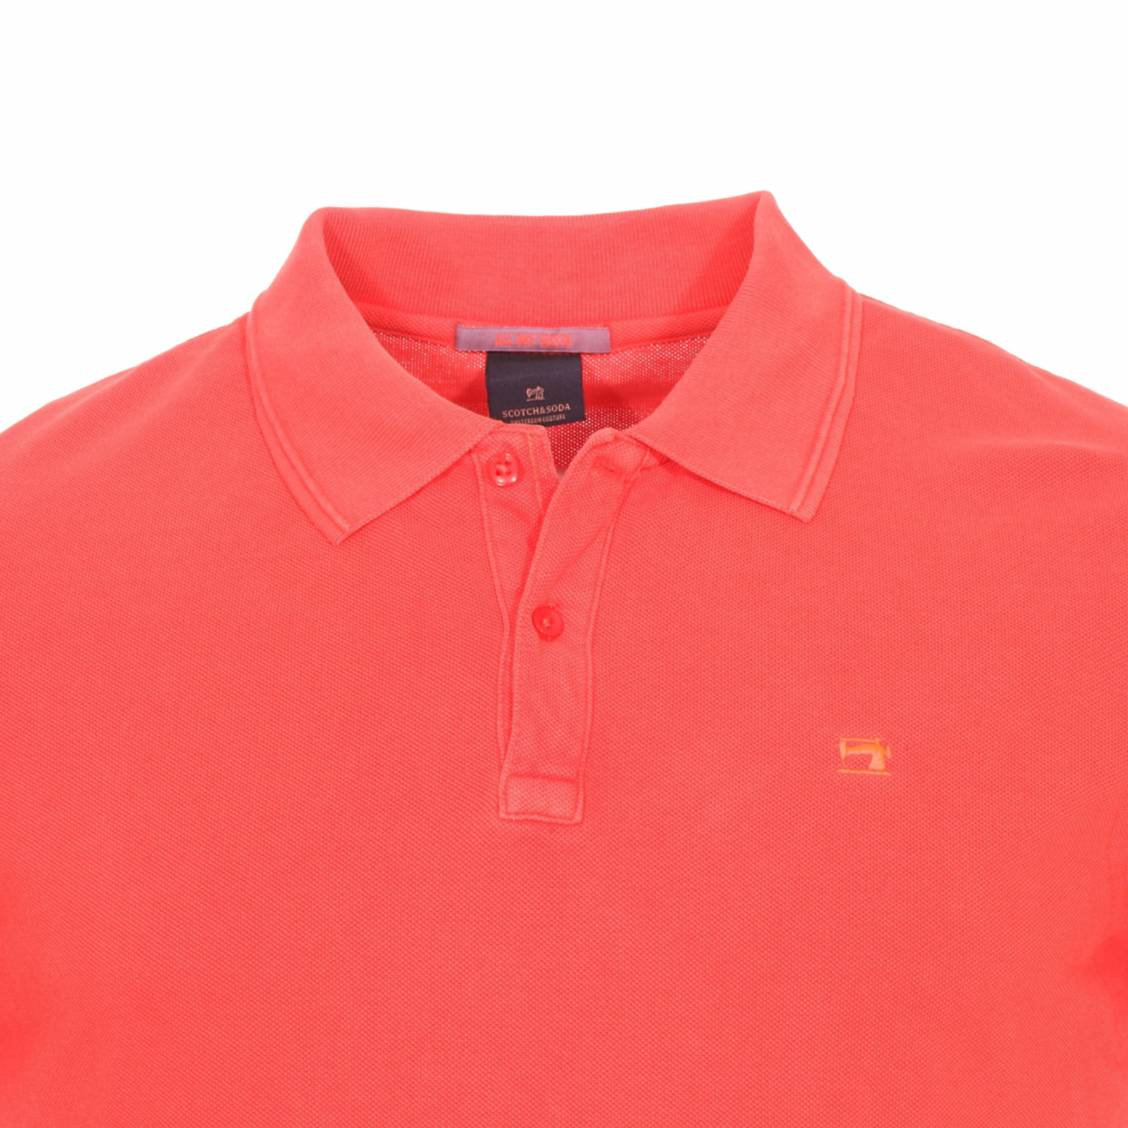 0f8fa07caae1 ... Polo Scotch   Soda Classic en coton piqué rouge ...